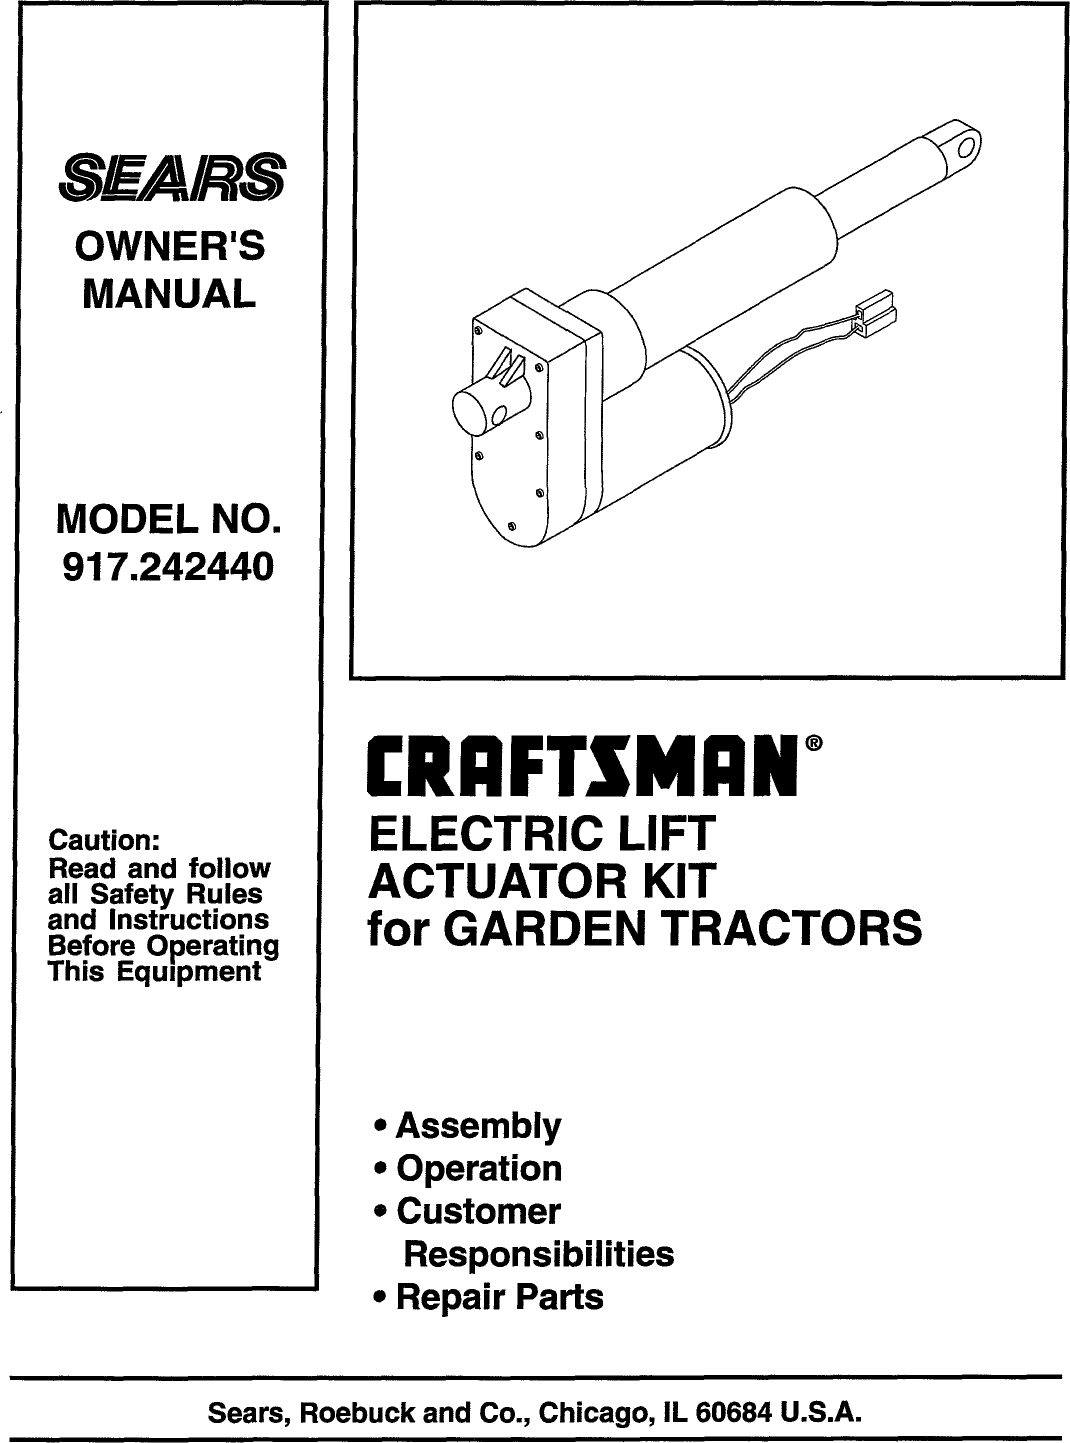 Craftsman 917242440 User Manual KIT ELECTRIC LIFT Manuals